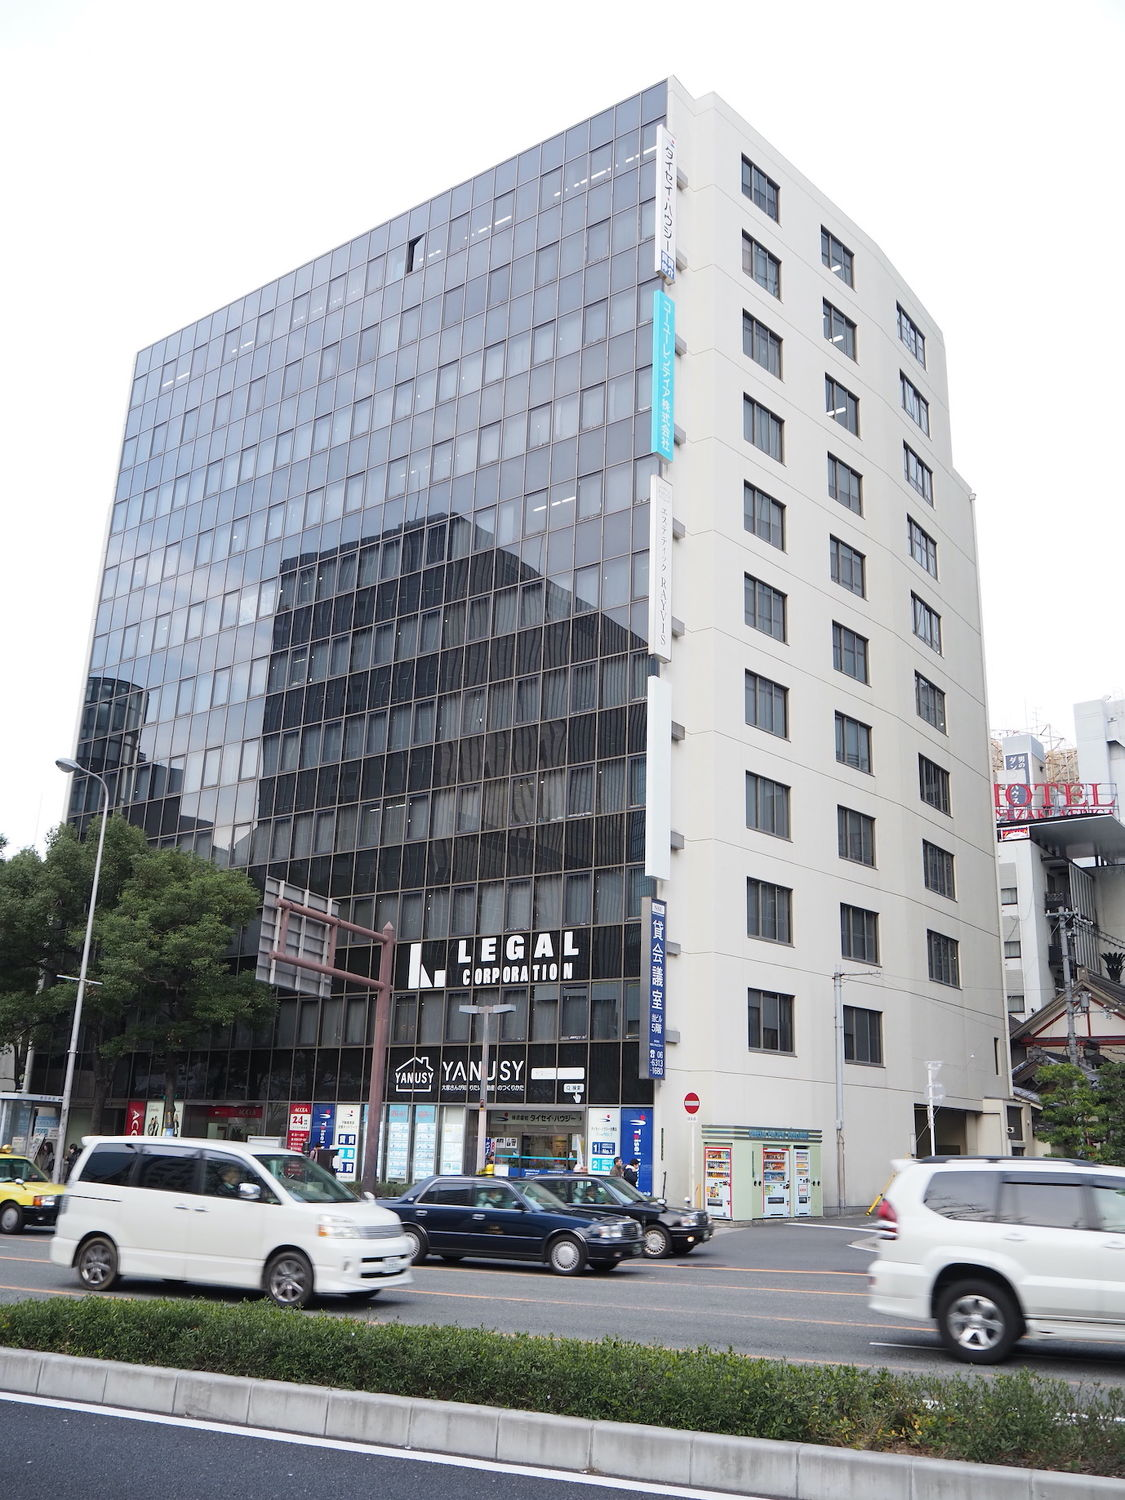 EDGEPROP SINGAPORE -  Last December, Thakral  purchased Umeda Pacific Building, an 11-storey office building prominently located along Mido Suji in Osaka, as part of its investment portfolio (Photo: Thakral Corp)